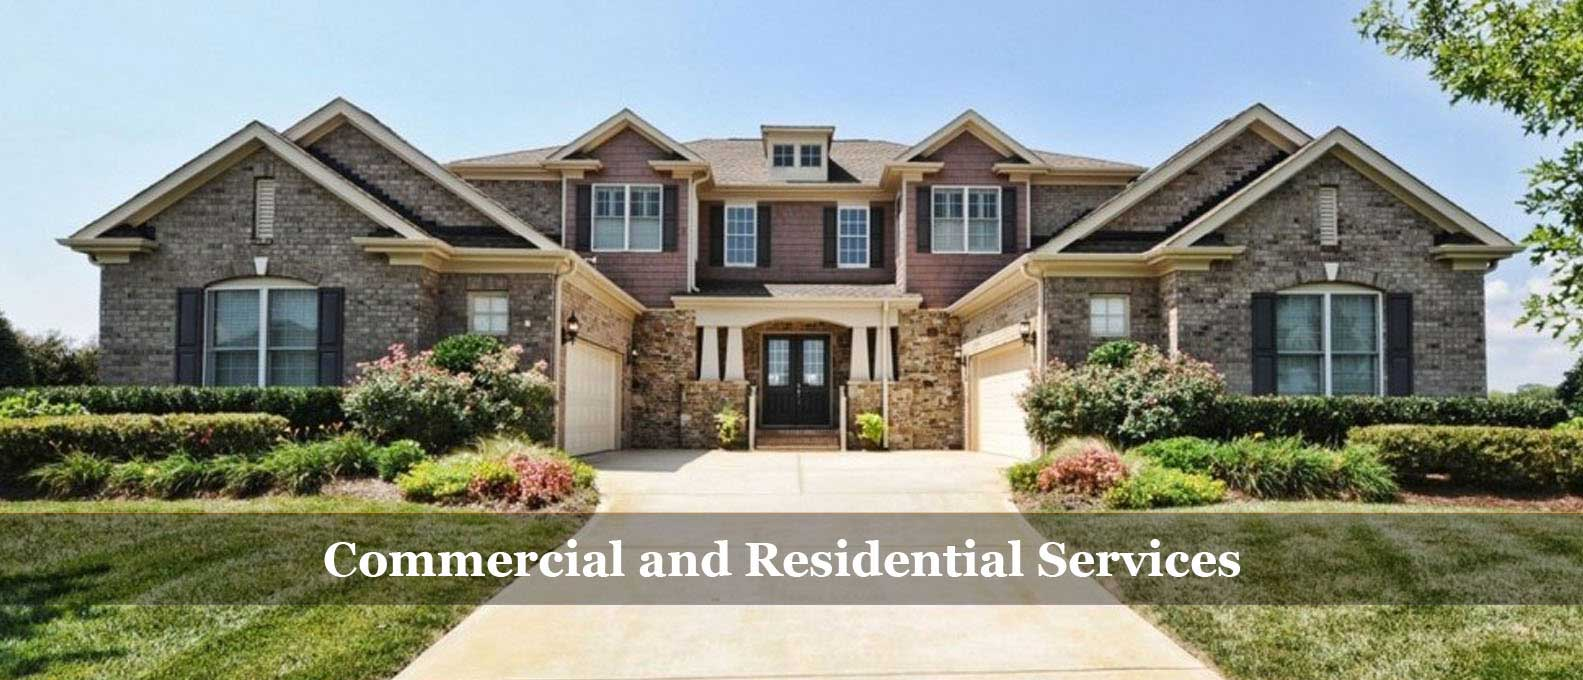 commercial-residential-services